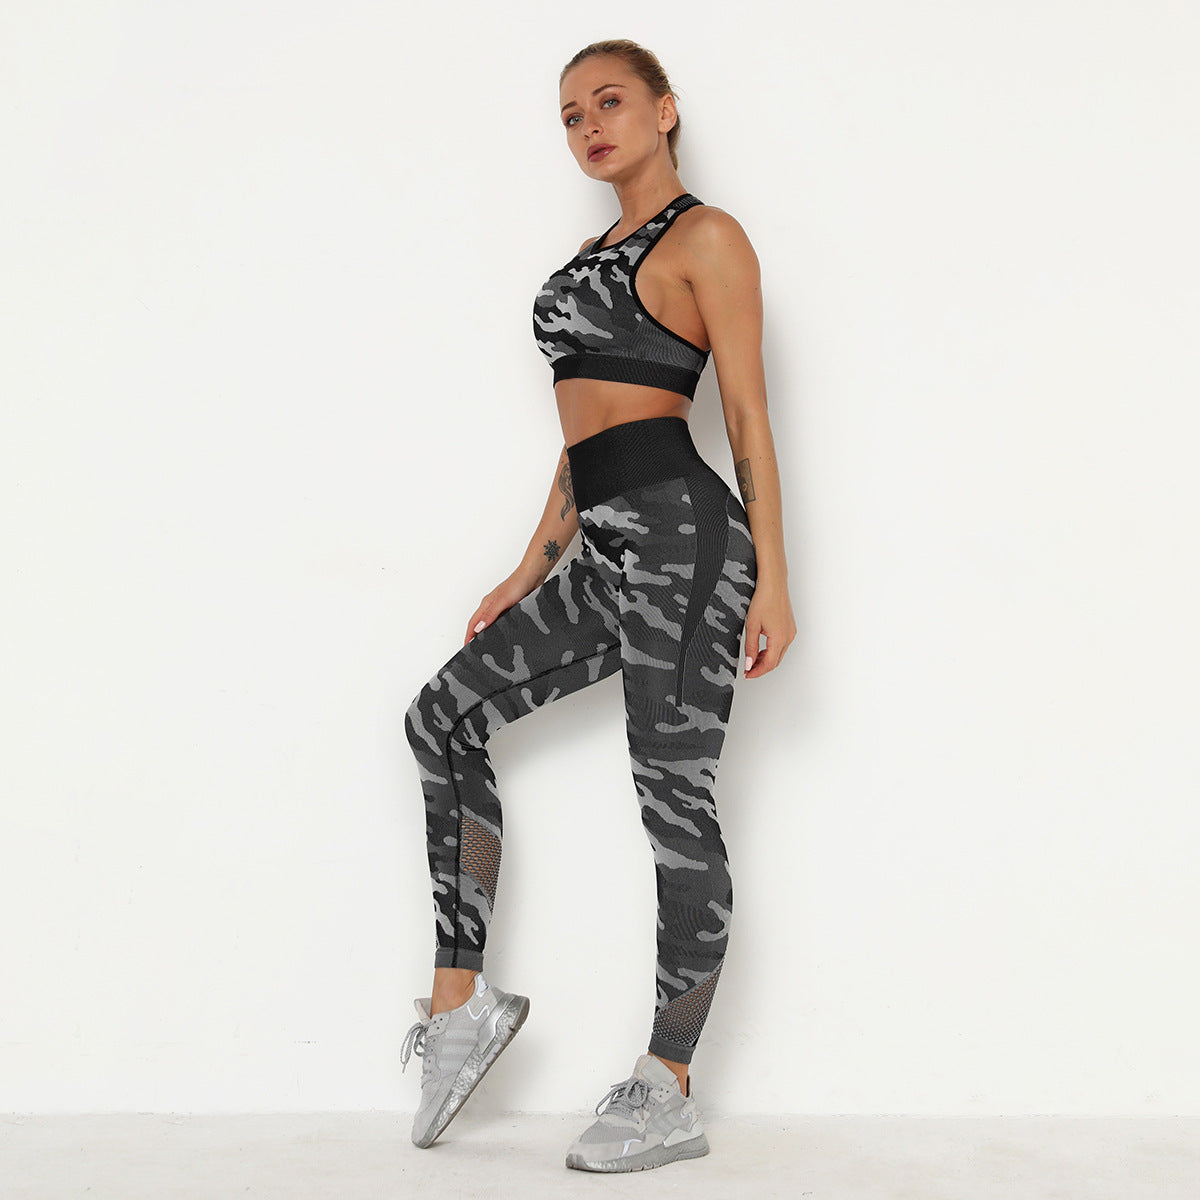 2020 Women Camouflage Hip Lift High Waisted Leggings Activewear High Elasticity Yoga Suit YS-010